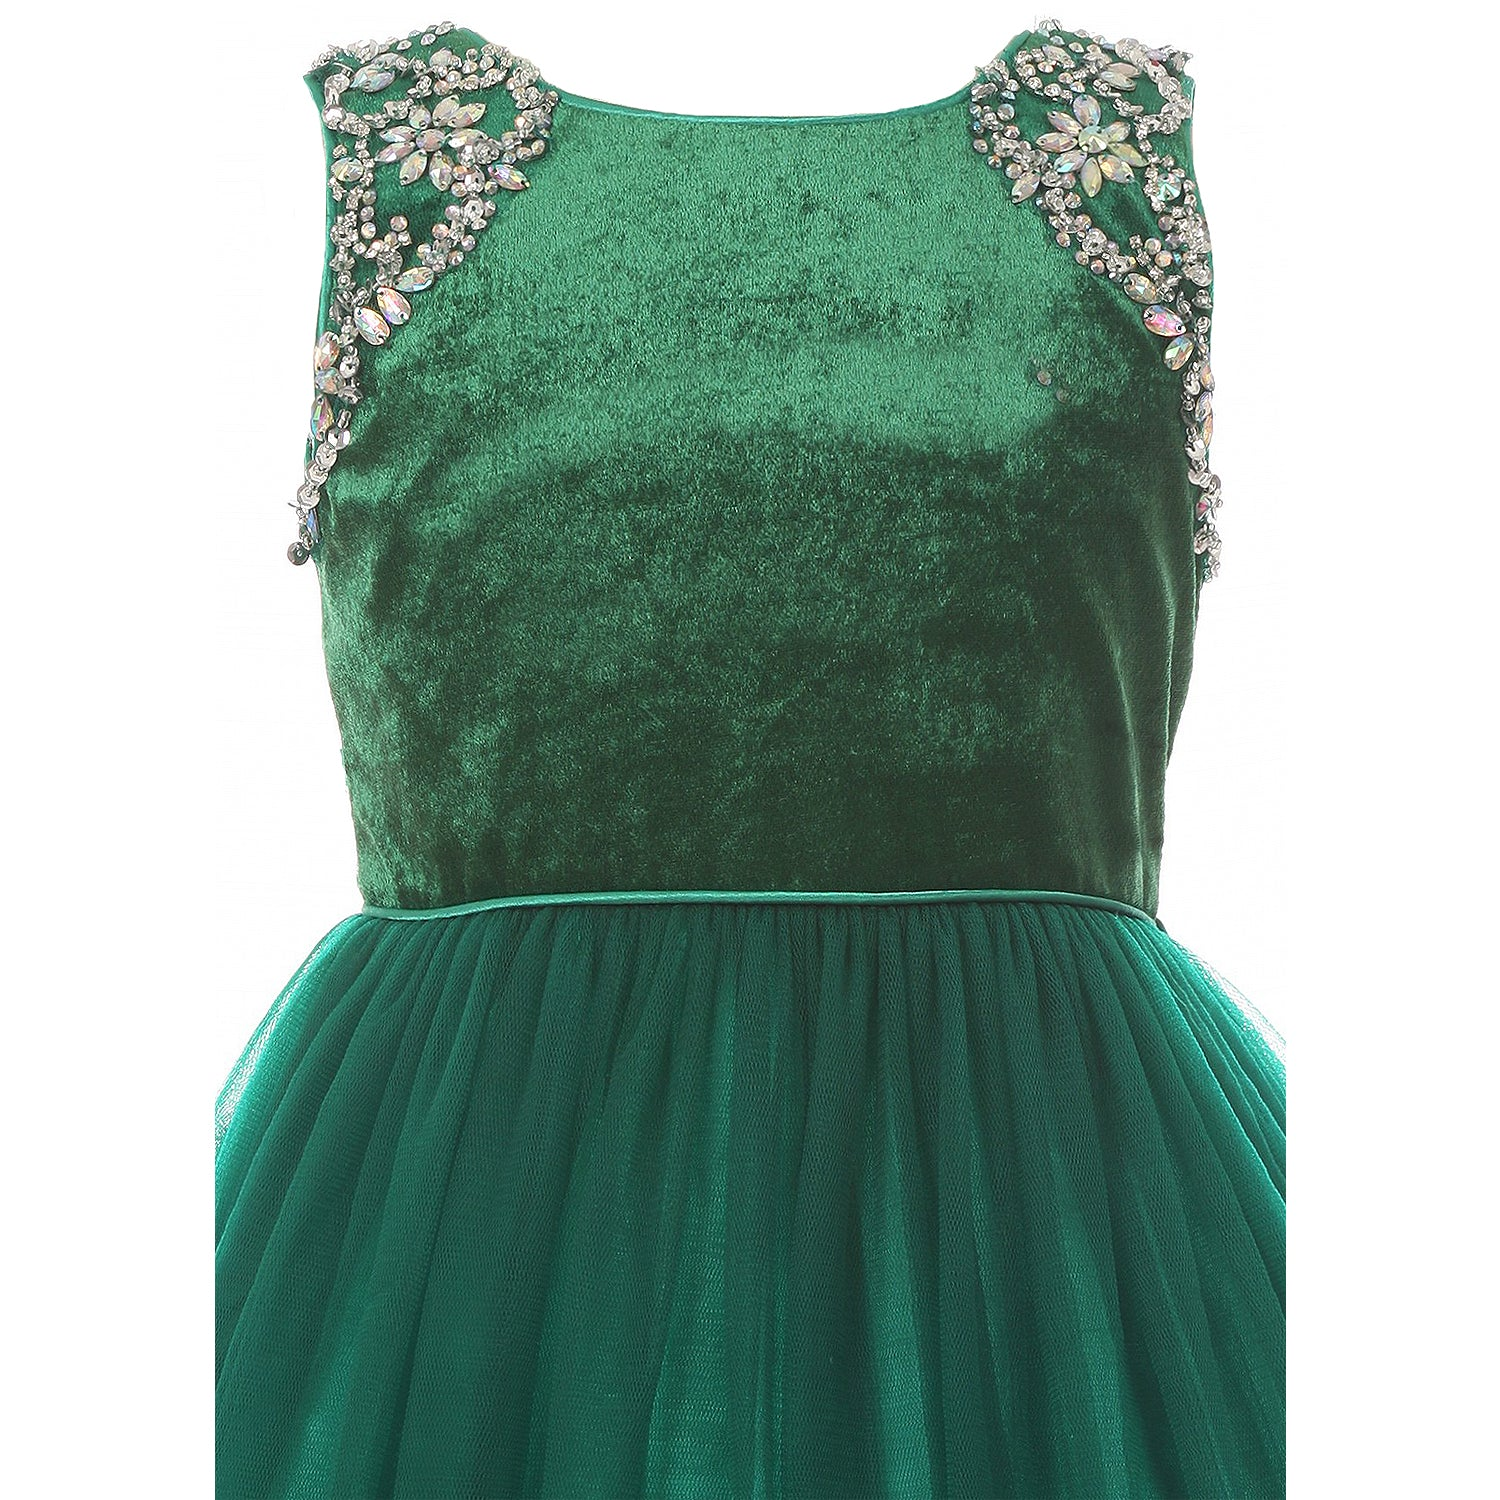 SHOULDER JEWEL BEADED APPLIQUES CORDED WAIST VELVET BODICE SOFT MESH SKIRT HOLIDAY DRESS